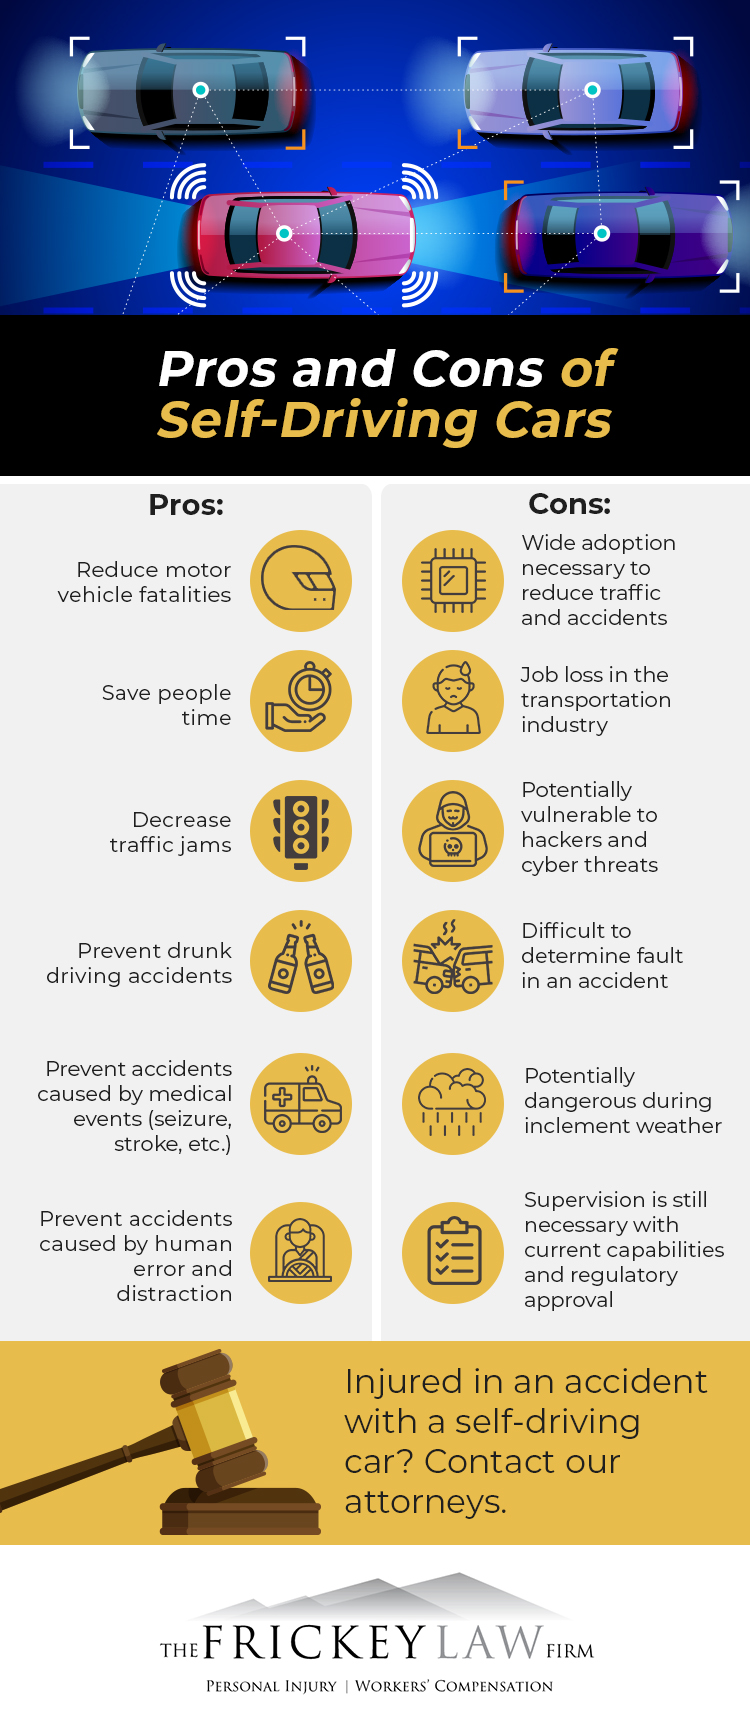 Pros and cons of self-driving cars infographic